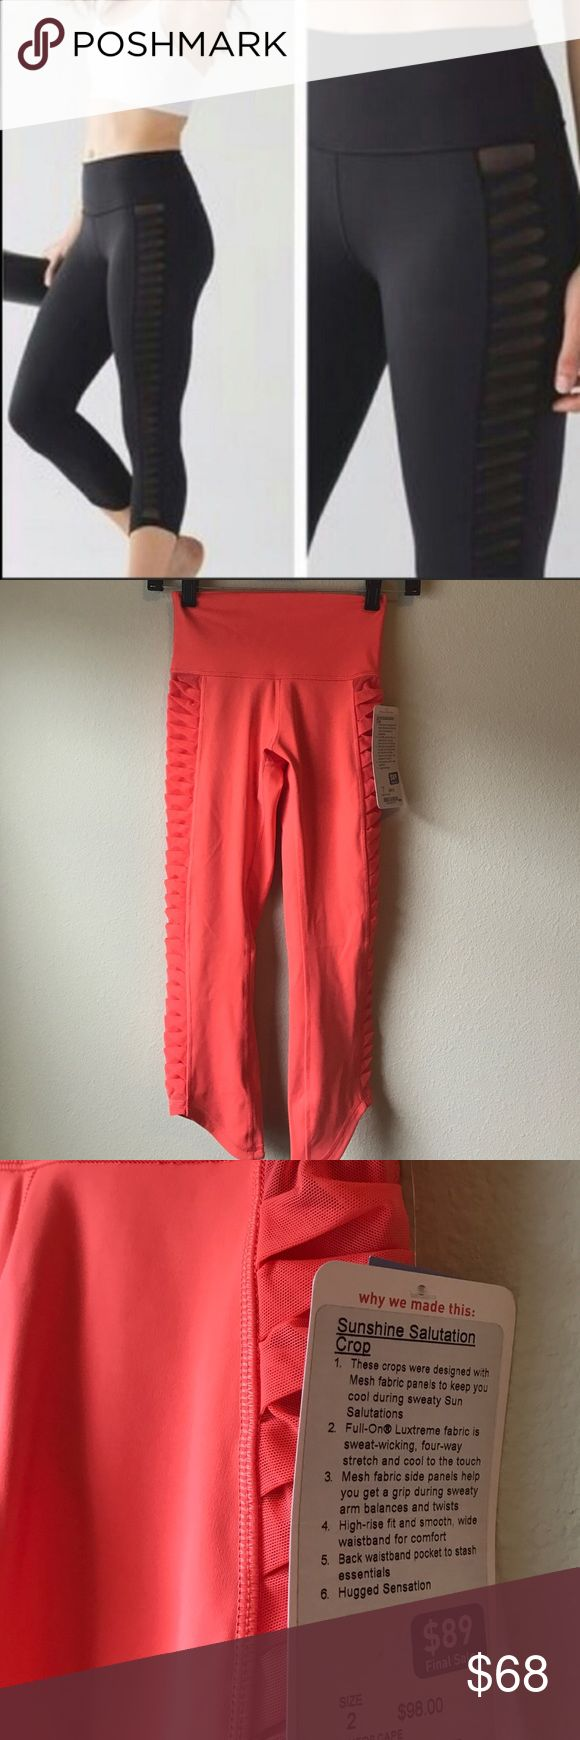 NWT LULULEMON SUNSHINE SALUTATION CROP -- Size 2 Brand: Lululemon Athletica sunshine Salutation crop | Cape Red NOT black | black is stock photo only  Condition: New with tag || Size 2   🚩NO TRADES  🚩NO LOWBALL OFFERS  🚩NO RUDE COMMENTS  🚩NO MODELING  ☀️Please don't discuss prices in the comment box. Make a reasonable offer and I'll either counter, accept or decline.   I will try to respond to all inquiries in a timely manner. Please check out the rest of my closet, I have various…